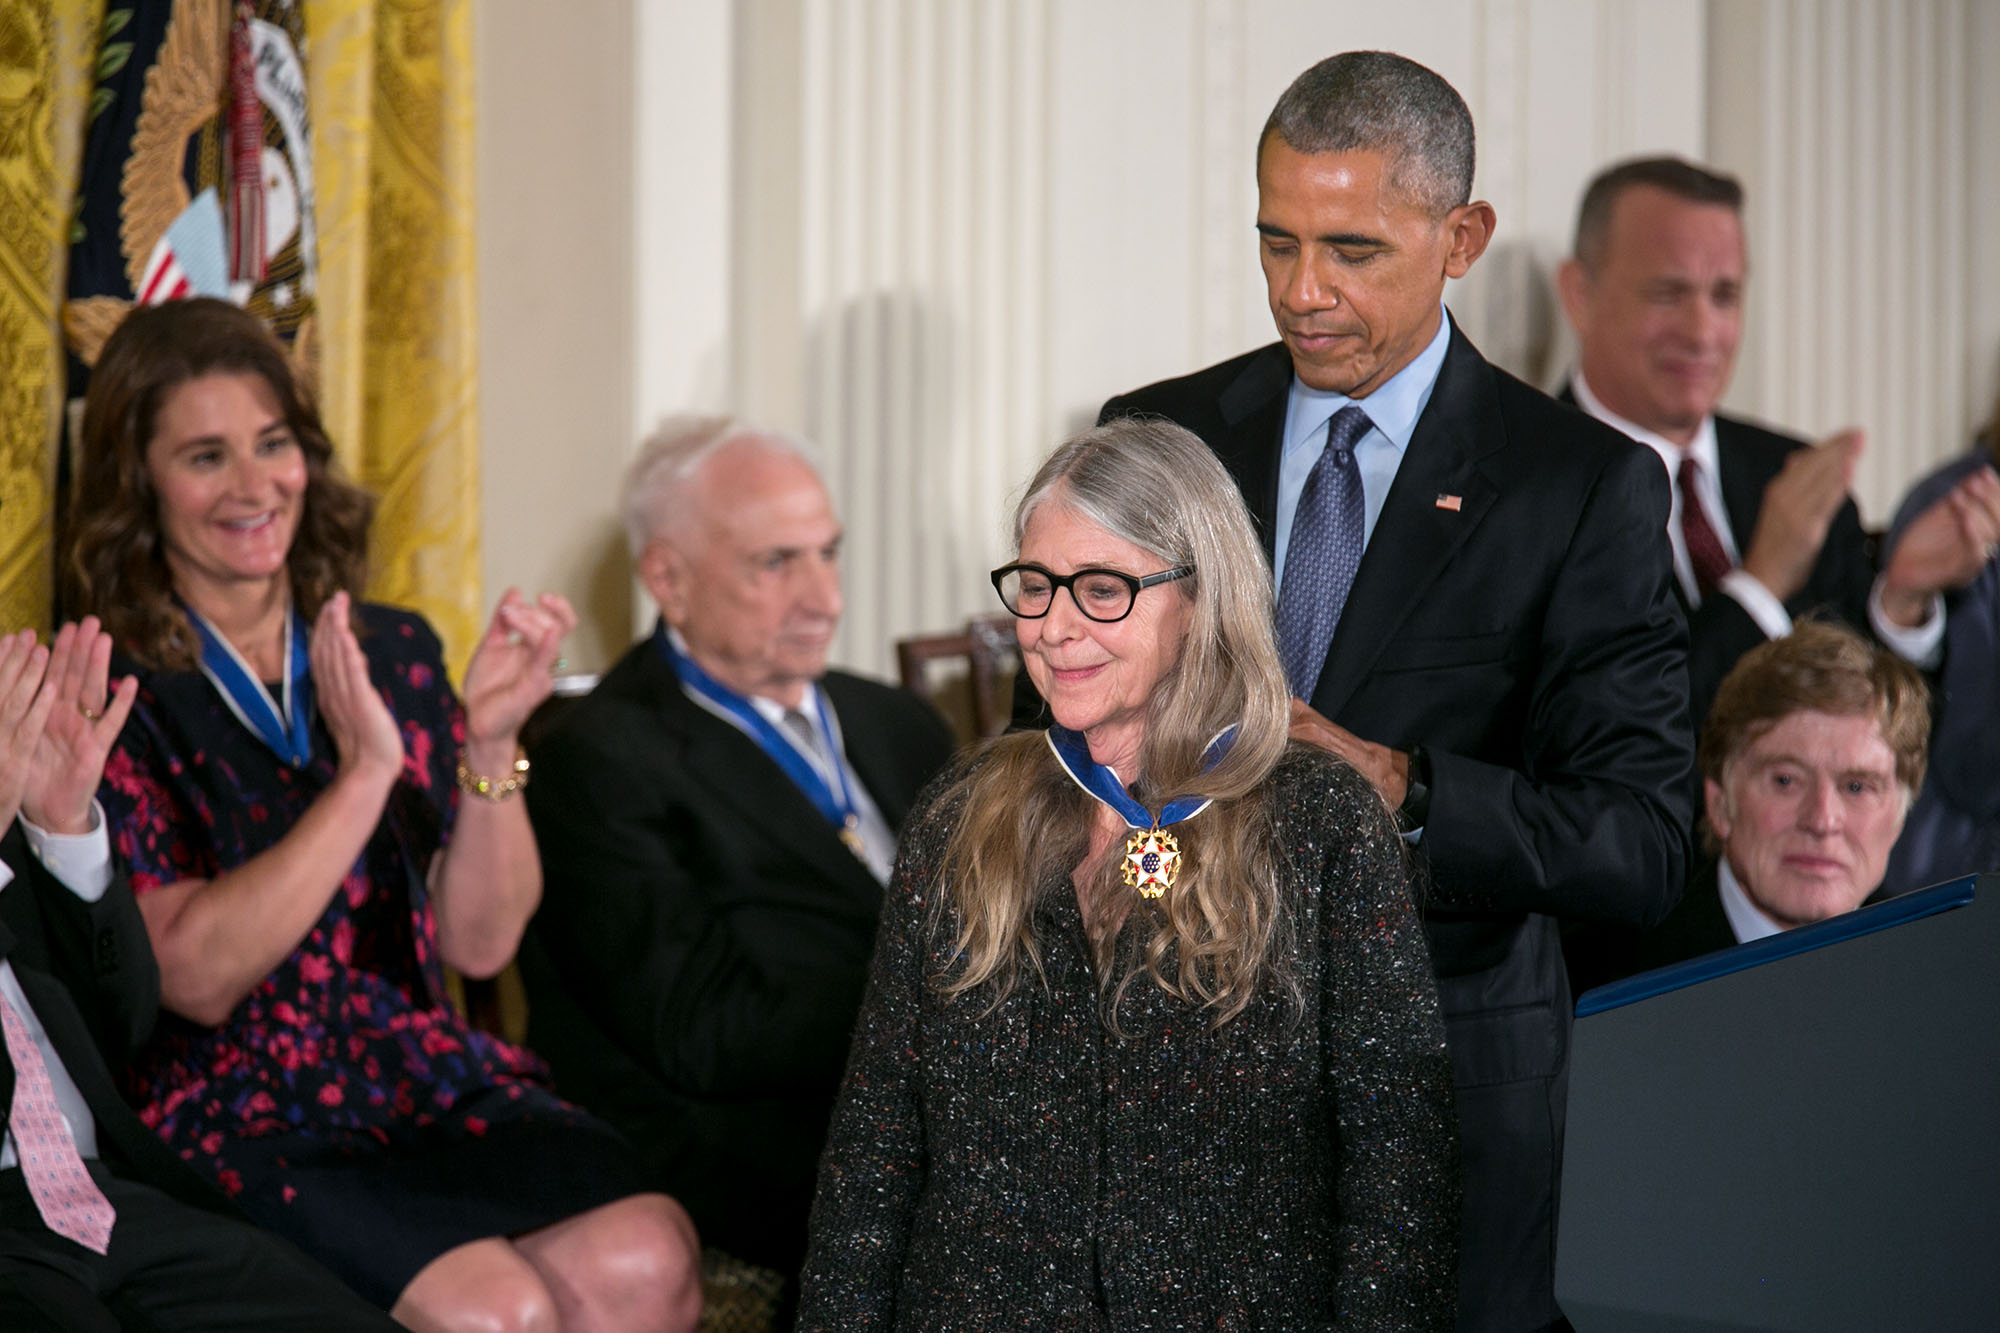 President Barack Obama presents the Presidential Medal of Freedom to Margaret H. Hamilton during a ceremony in the East Room of the White House, Nov. 22, 2016. (Official White House Photo by Lawrence Jackson)